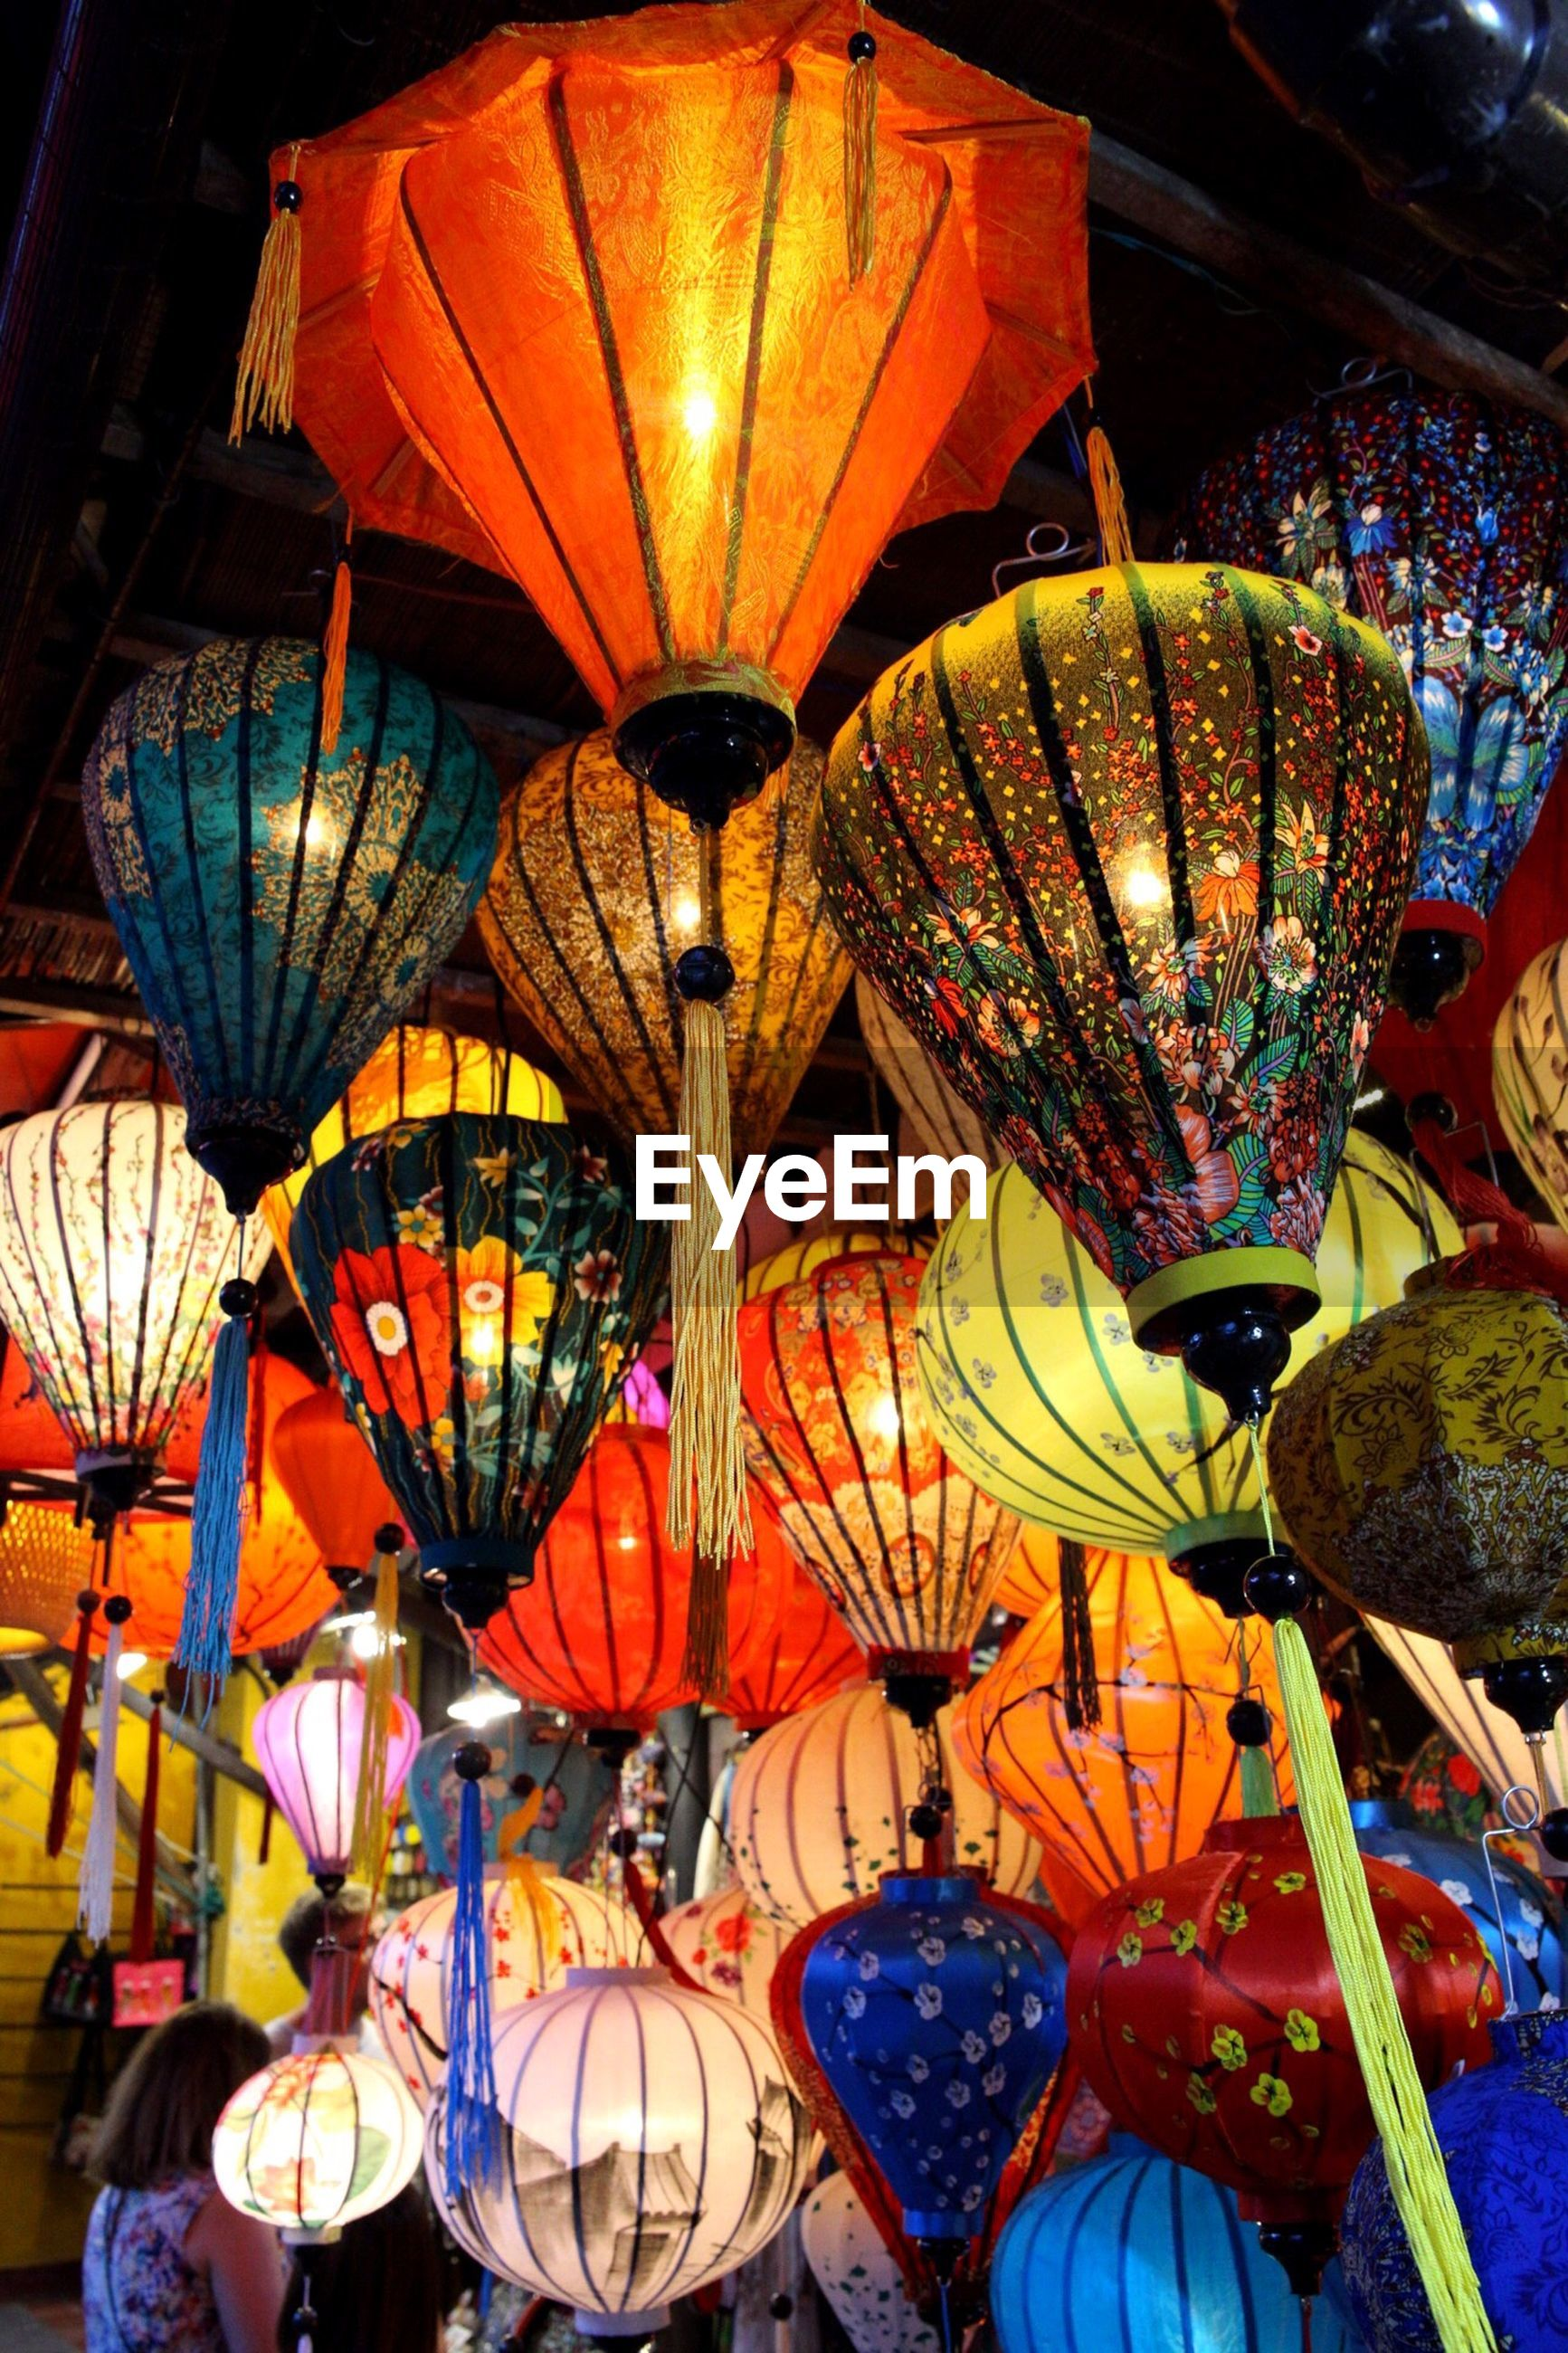 LOW ANGLE VIEW OF LANTERNS HANGING IN MARKET AT NIGHT